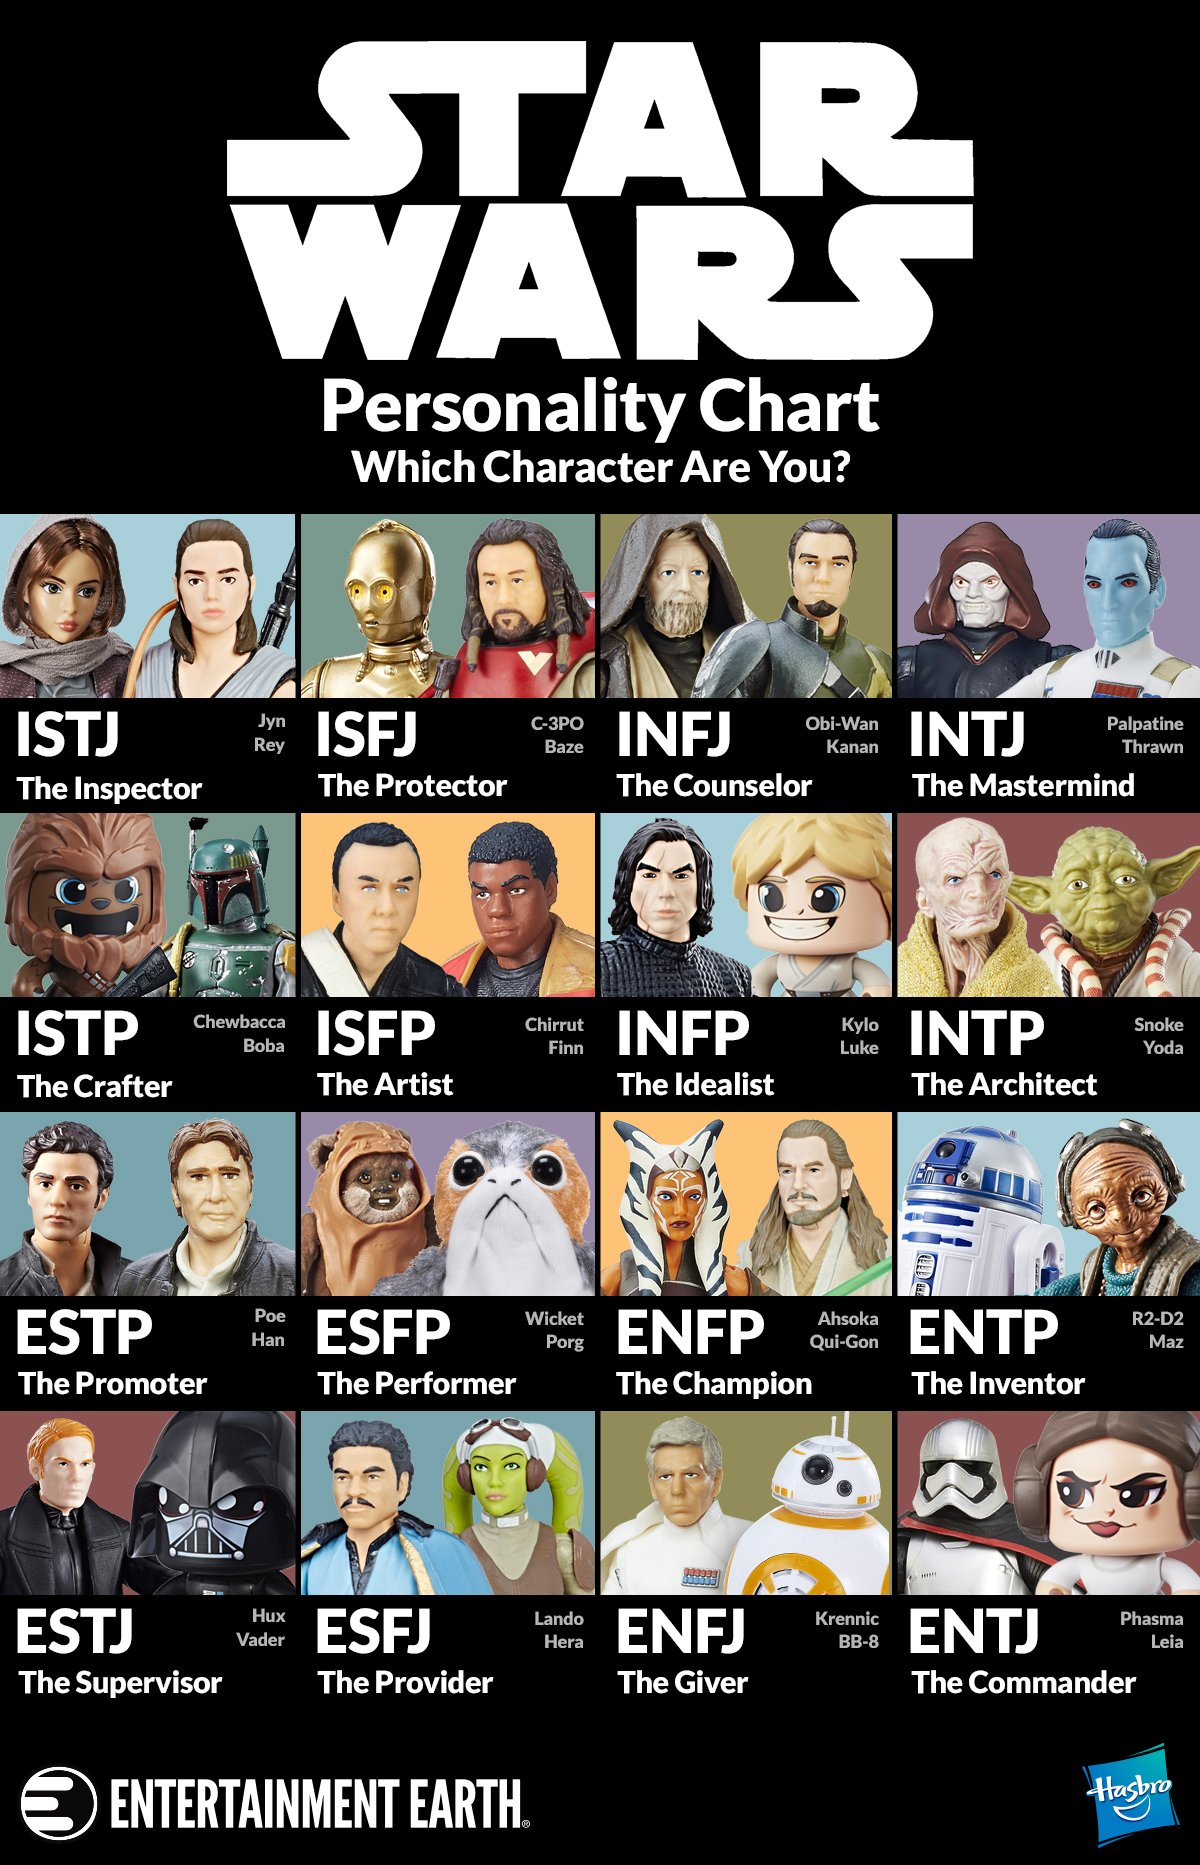 Star Wars Character Personality Chart